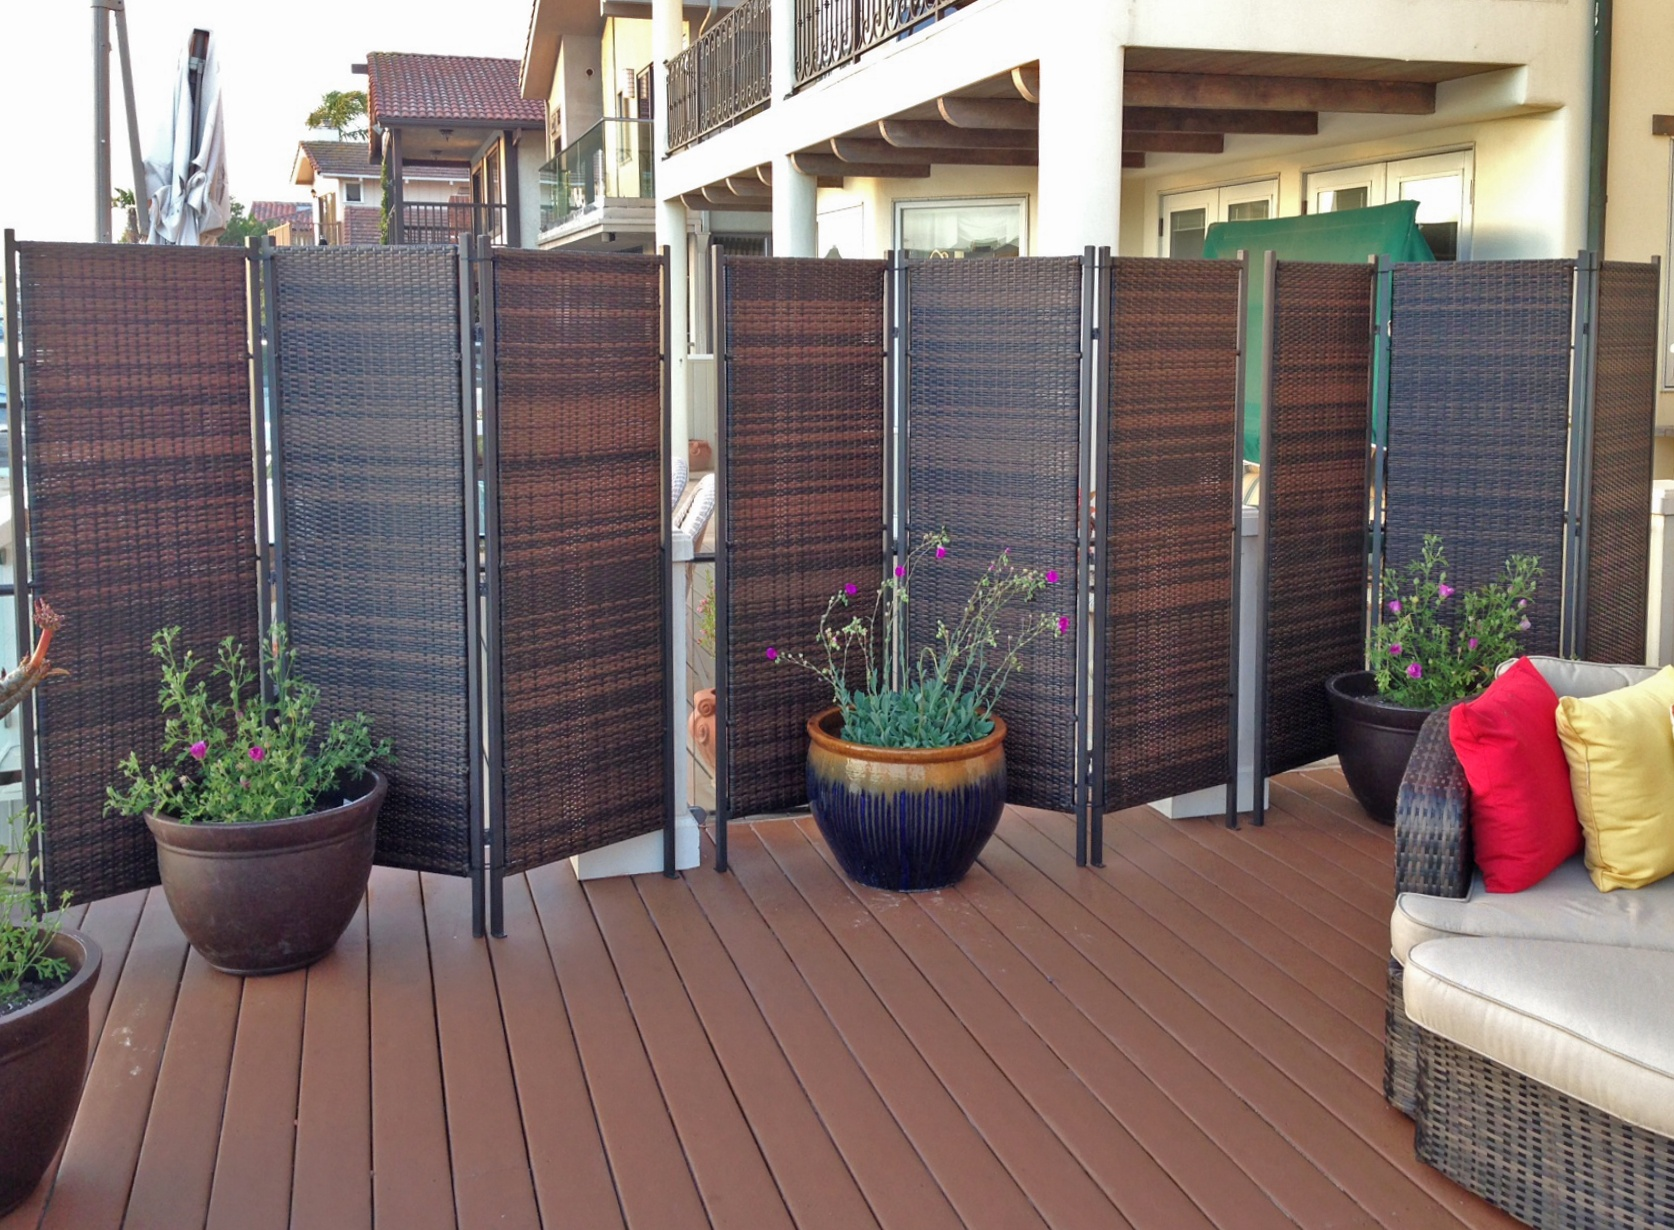 Paravent Mobile Pour Terrasse More Privacy For Your Deck Or Patio Amazing Decks